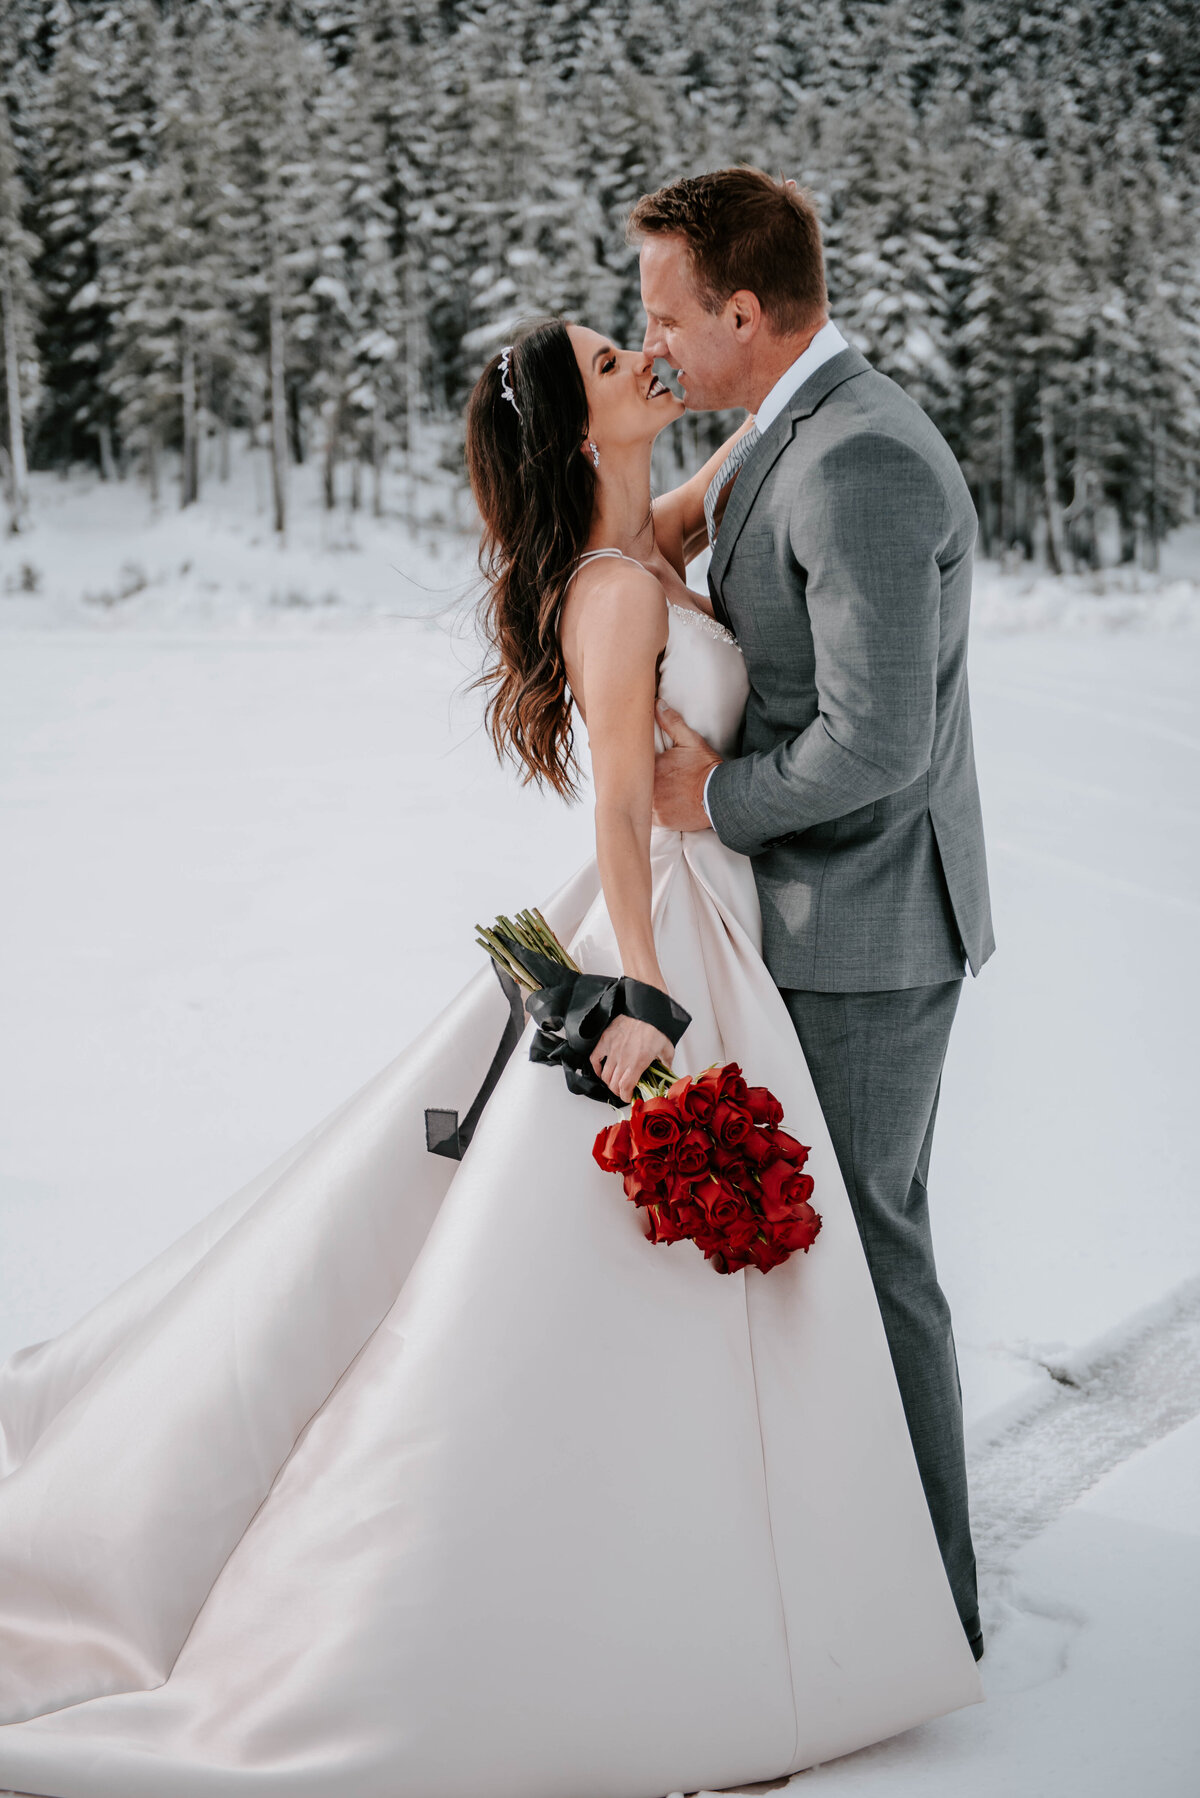 mt-bachelor-snow-winter-elopement-bend-oregon-wedding-photographer-2081